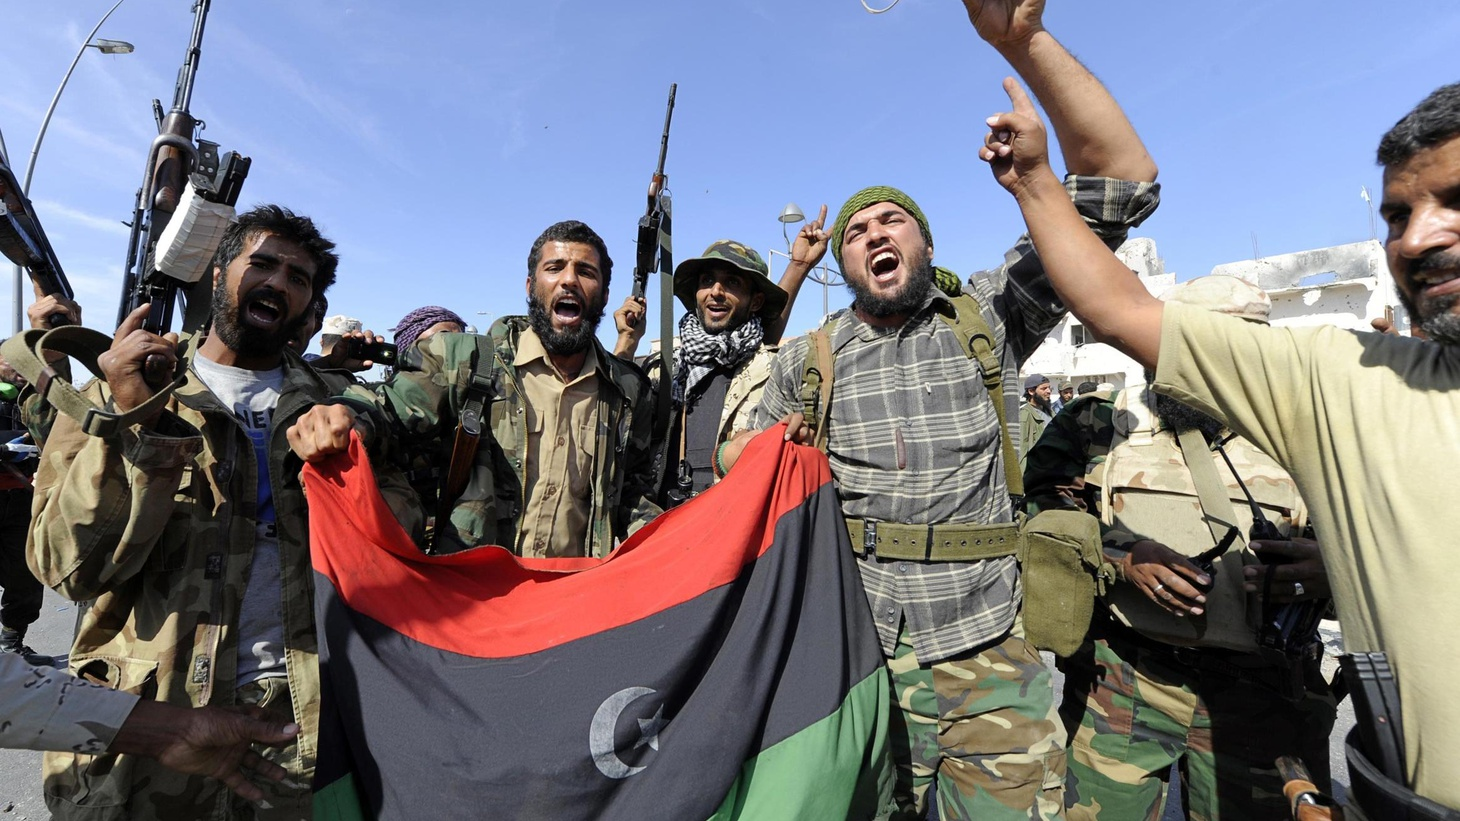 Libyans danced in the streets today, celebrating the death of a tyrant brought down by his own people with help from the US and NATO....